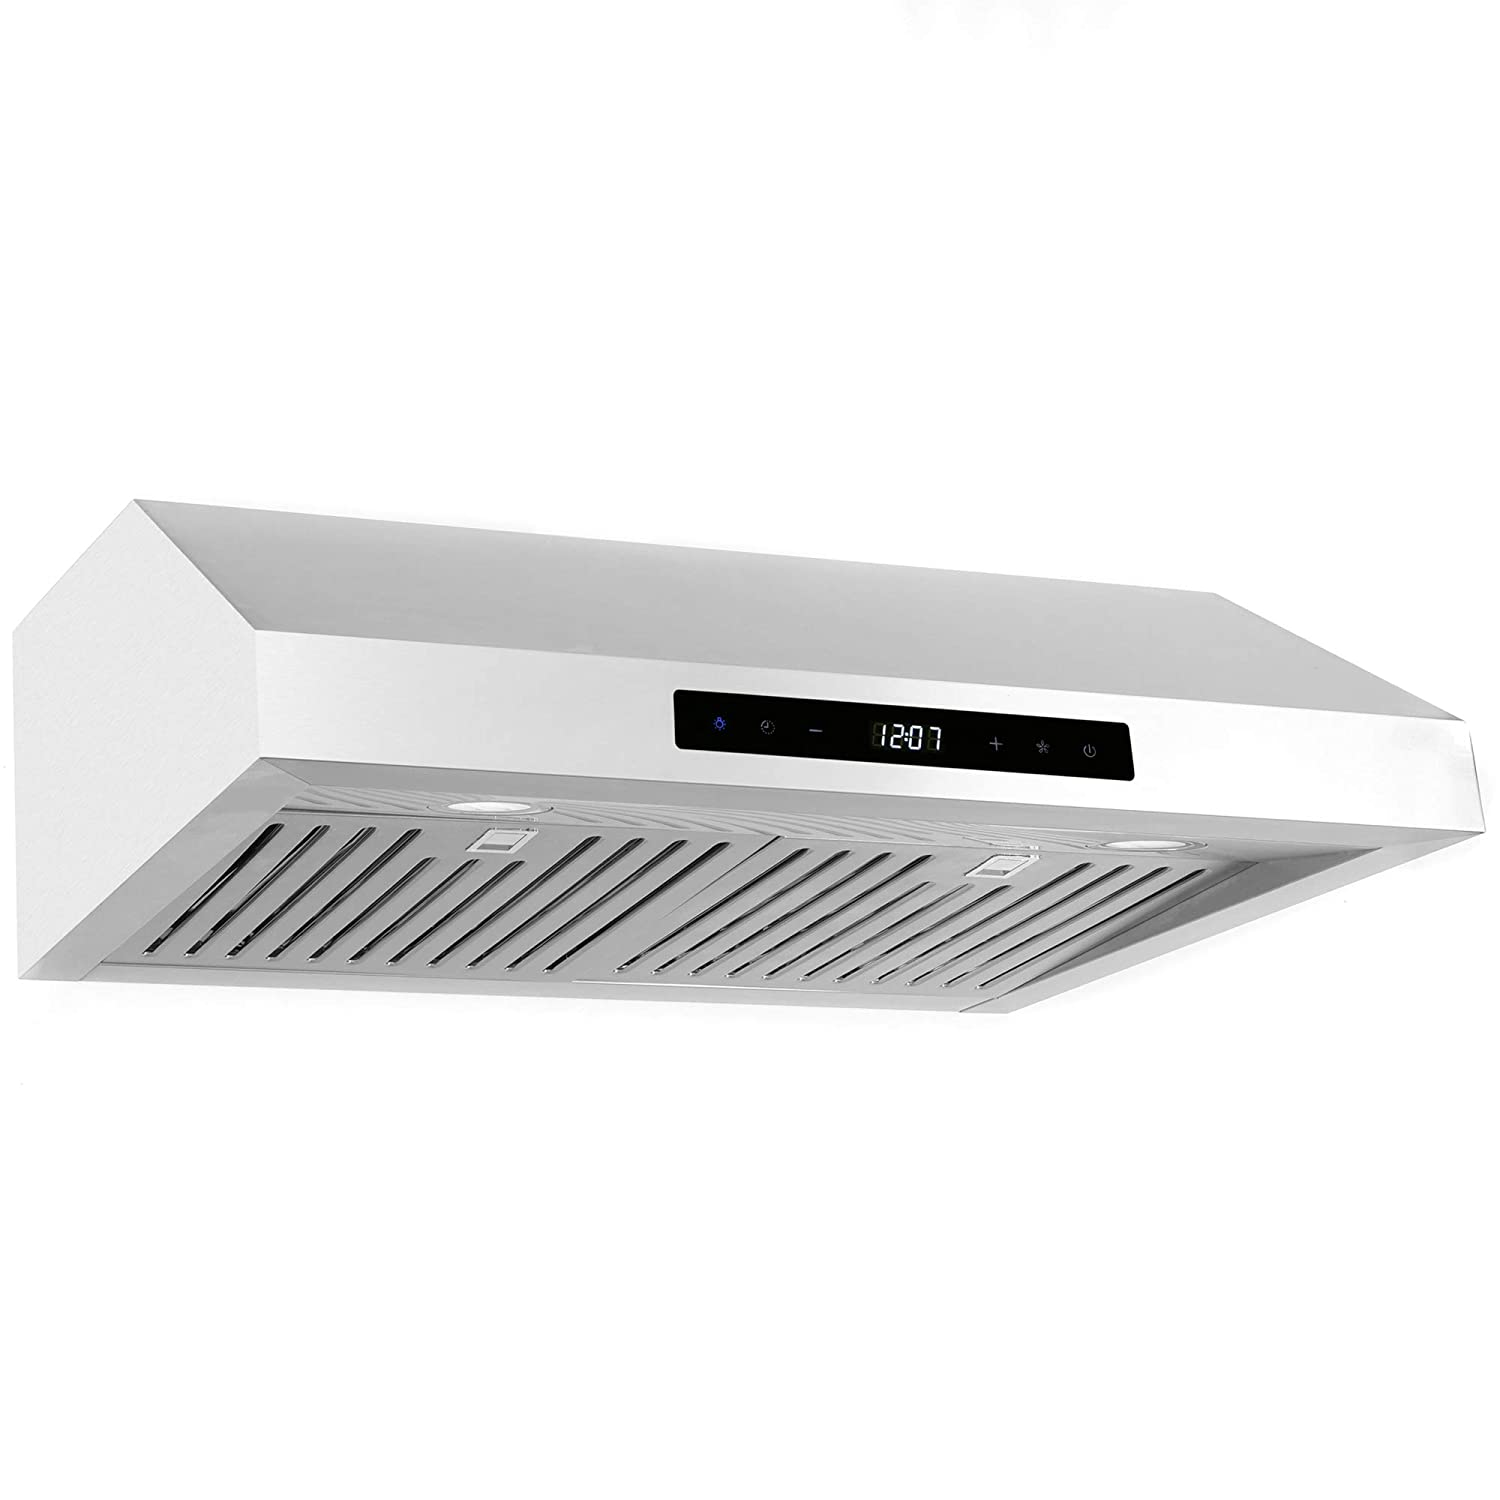 Cosmo umc30 30 in under cabinet range hood 760 cfm ductless convertible duct wireless kitchen stove vent led light 3 speed exhaust fan timer